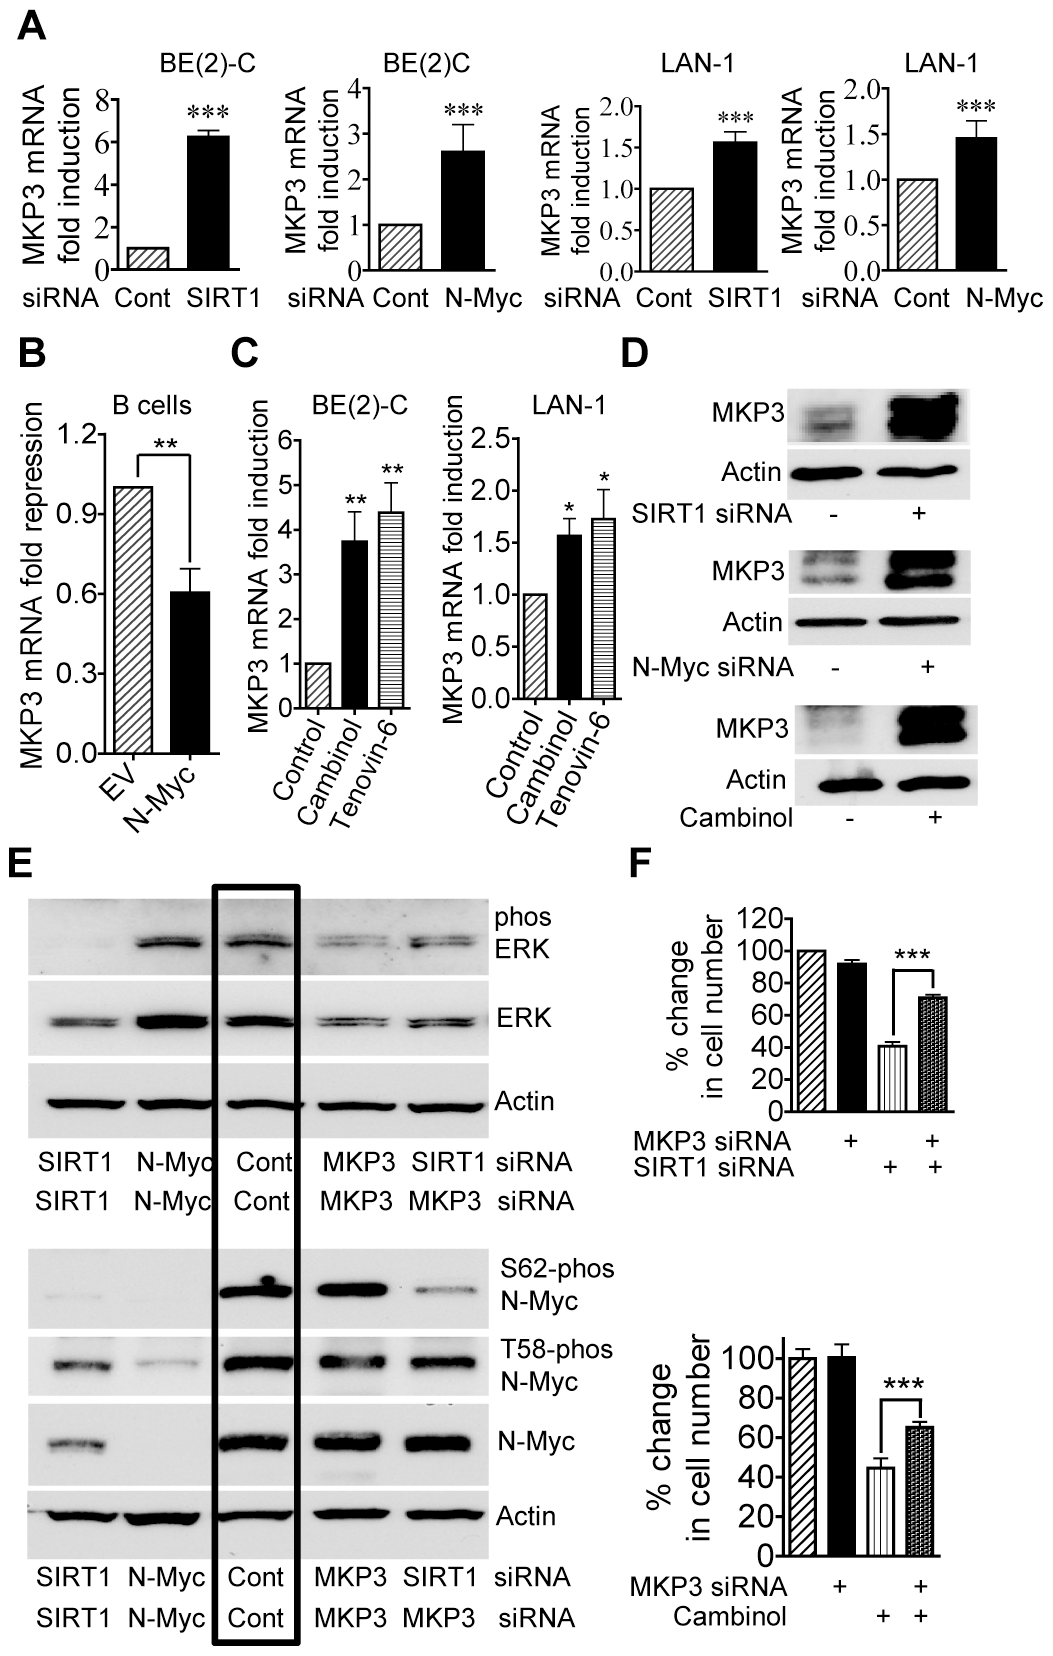 Repression of MKP3 gene expression is required for SIRT1-induced N-Myc protein stabilization and SIRT1-induced cell proliferation.